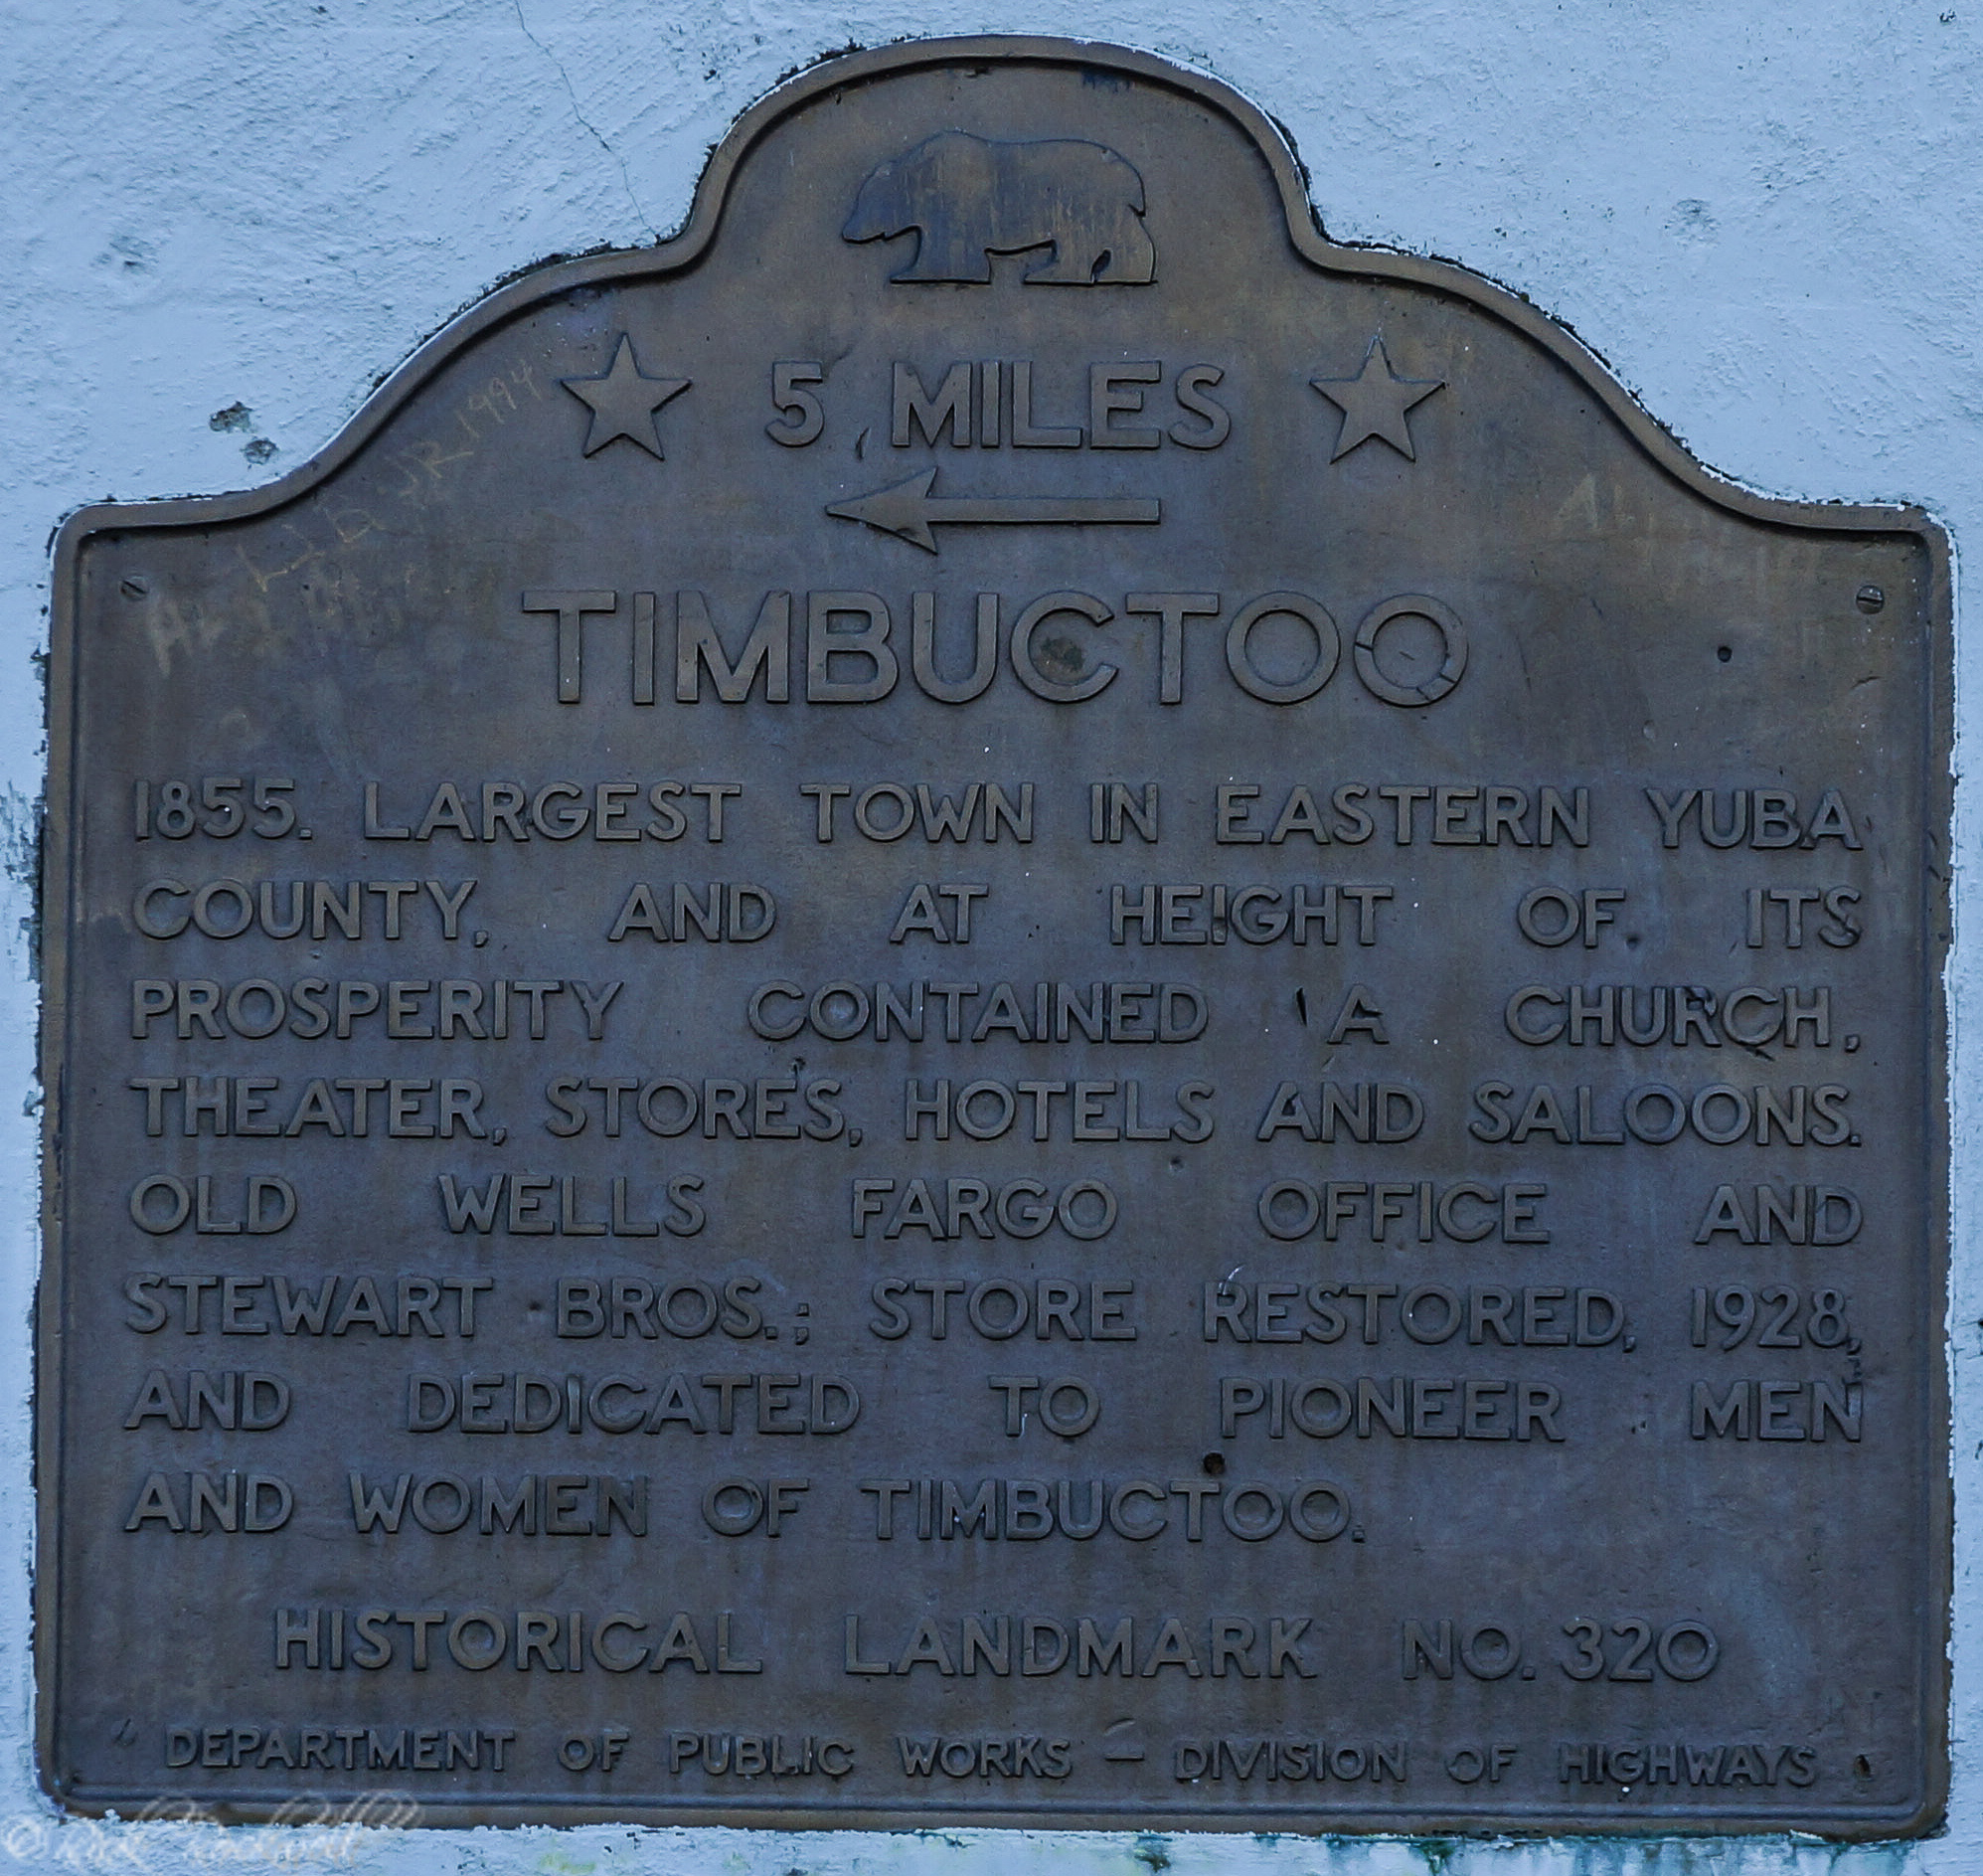 timbuctoo-marker-1-of-1